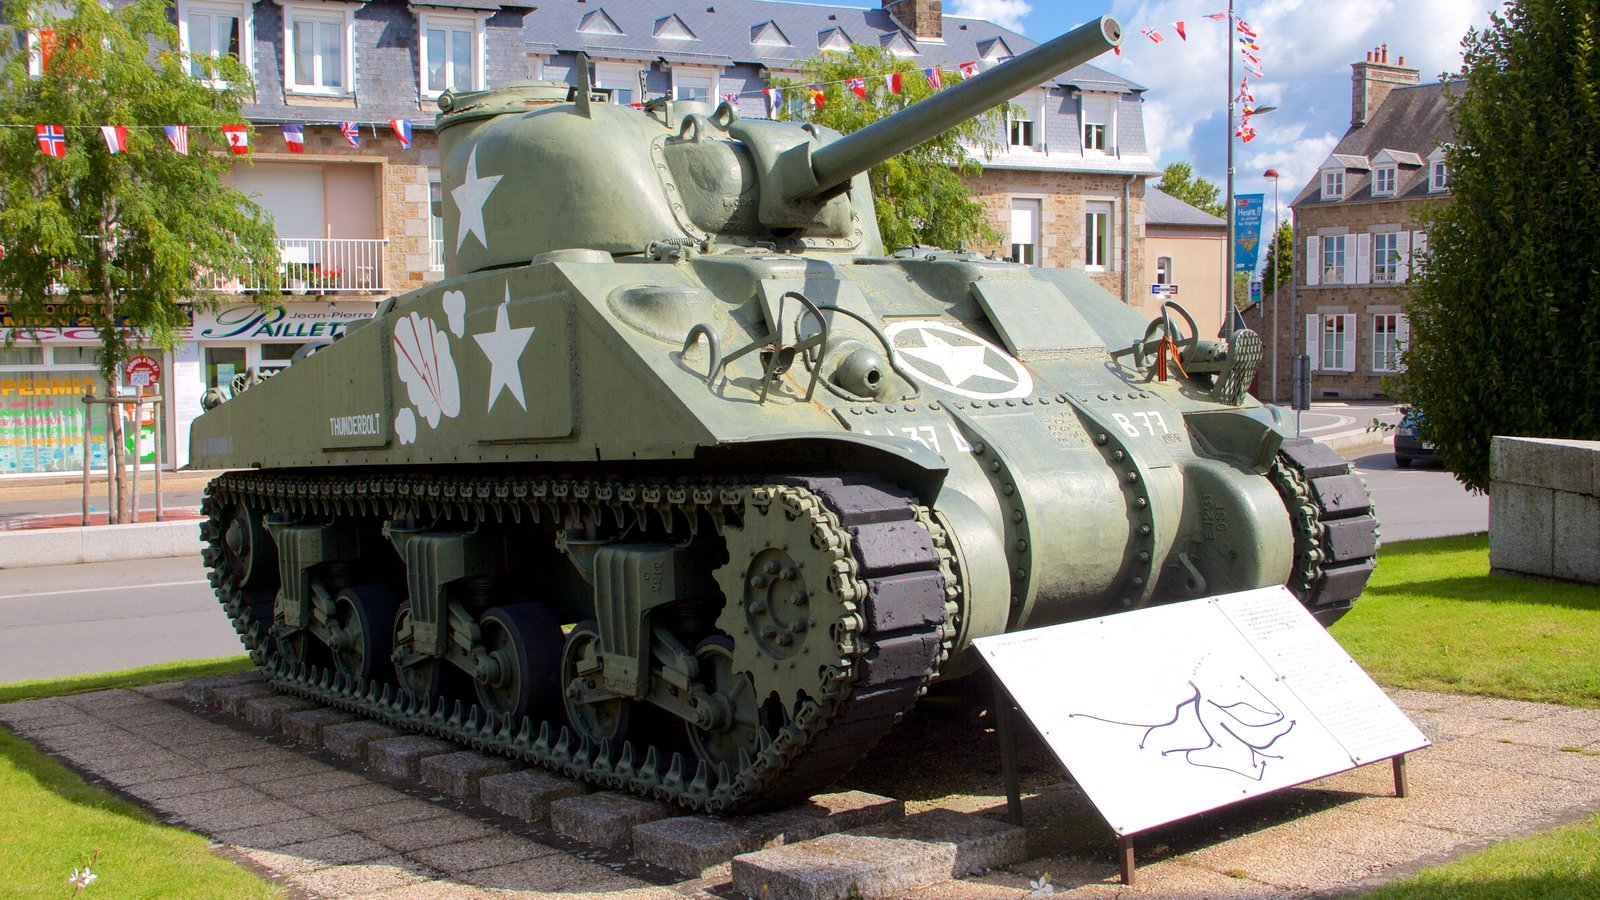 Avranches which includes heritage elements and military items